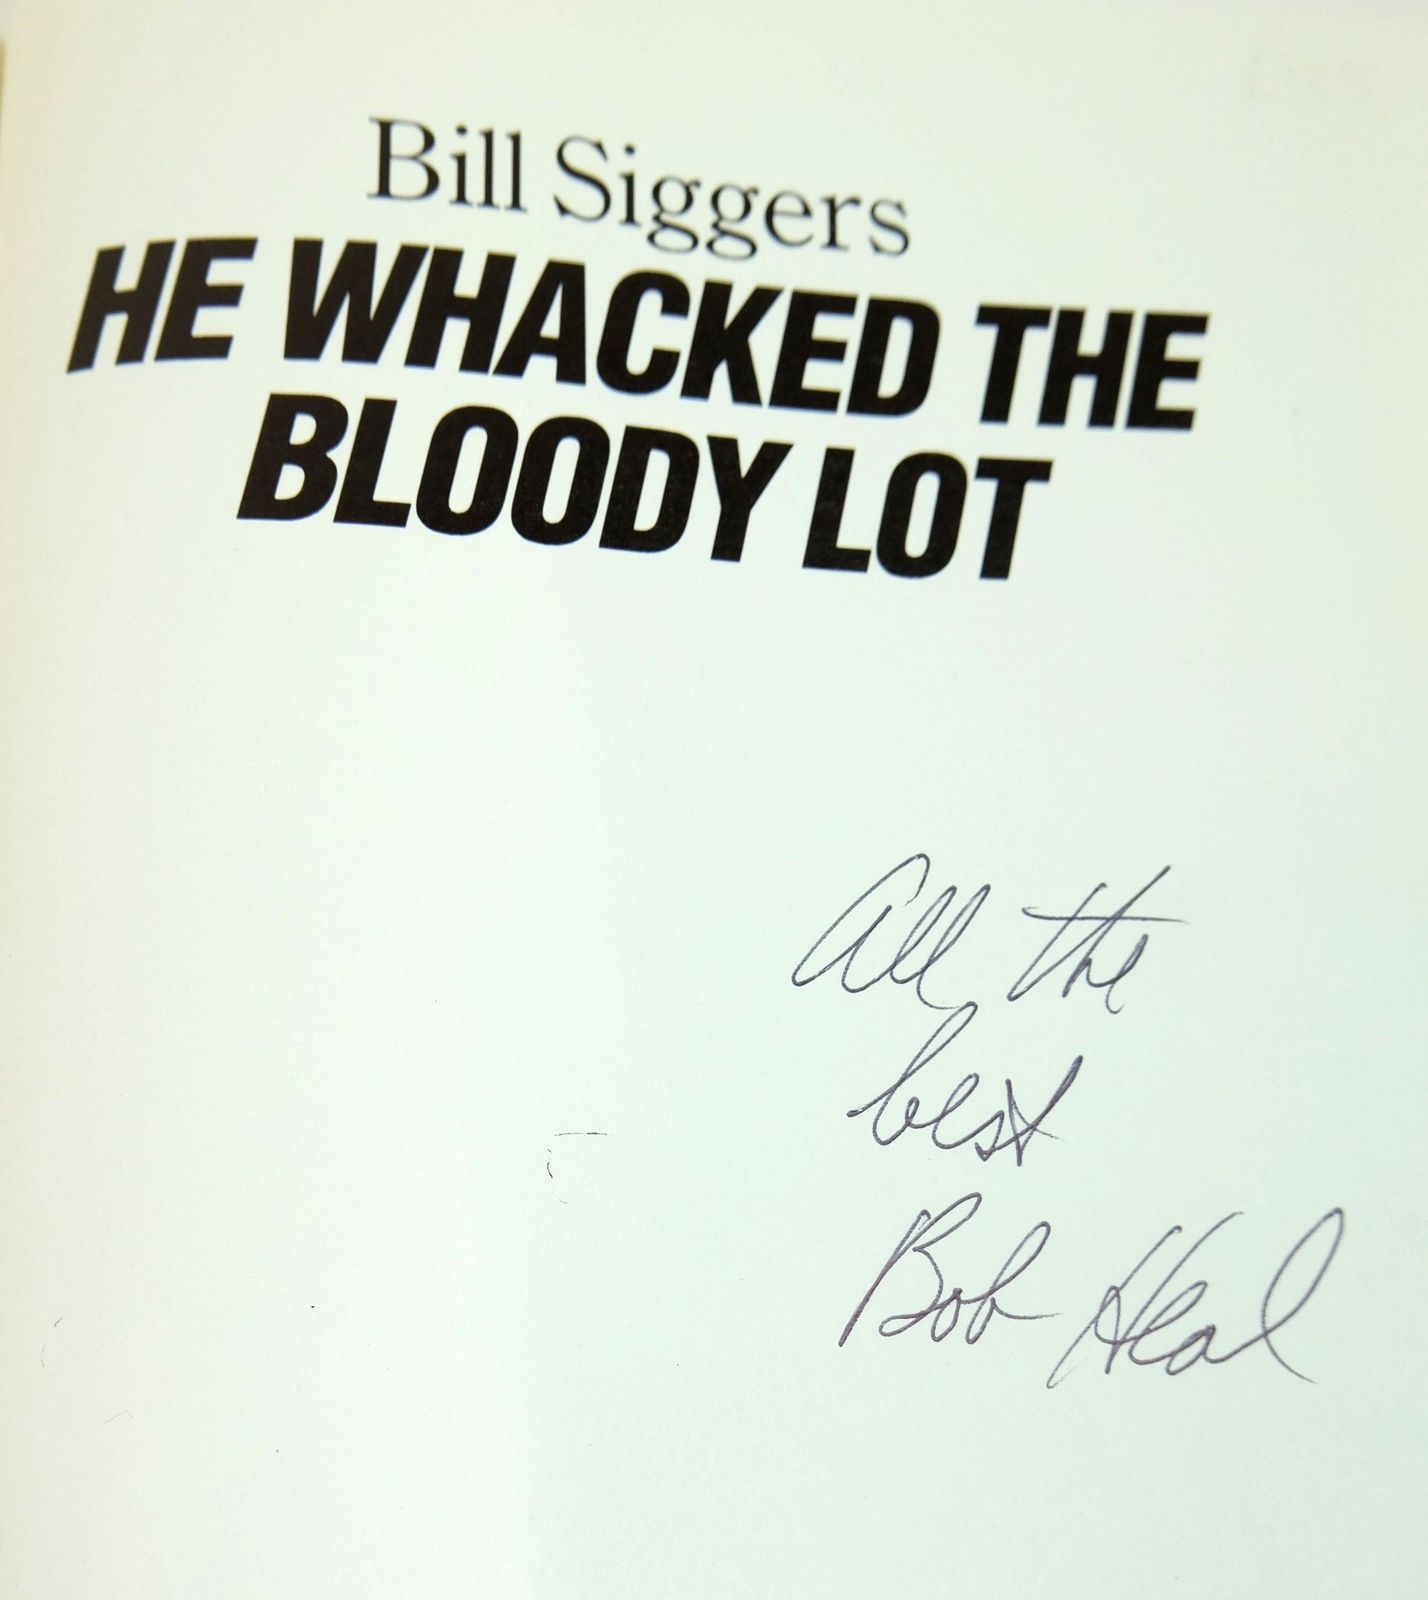 Photo of BILL SIGGERS HE WHACKED THE BLOODY LOT written by Heal, Robert E. published by Breachurst Limited (STOCK CODE: 1819154)  for sale by Stella & Rose's Books